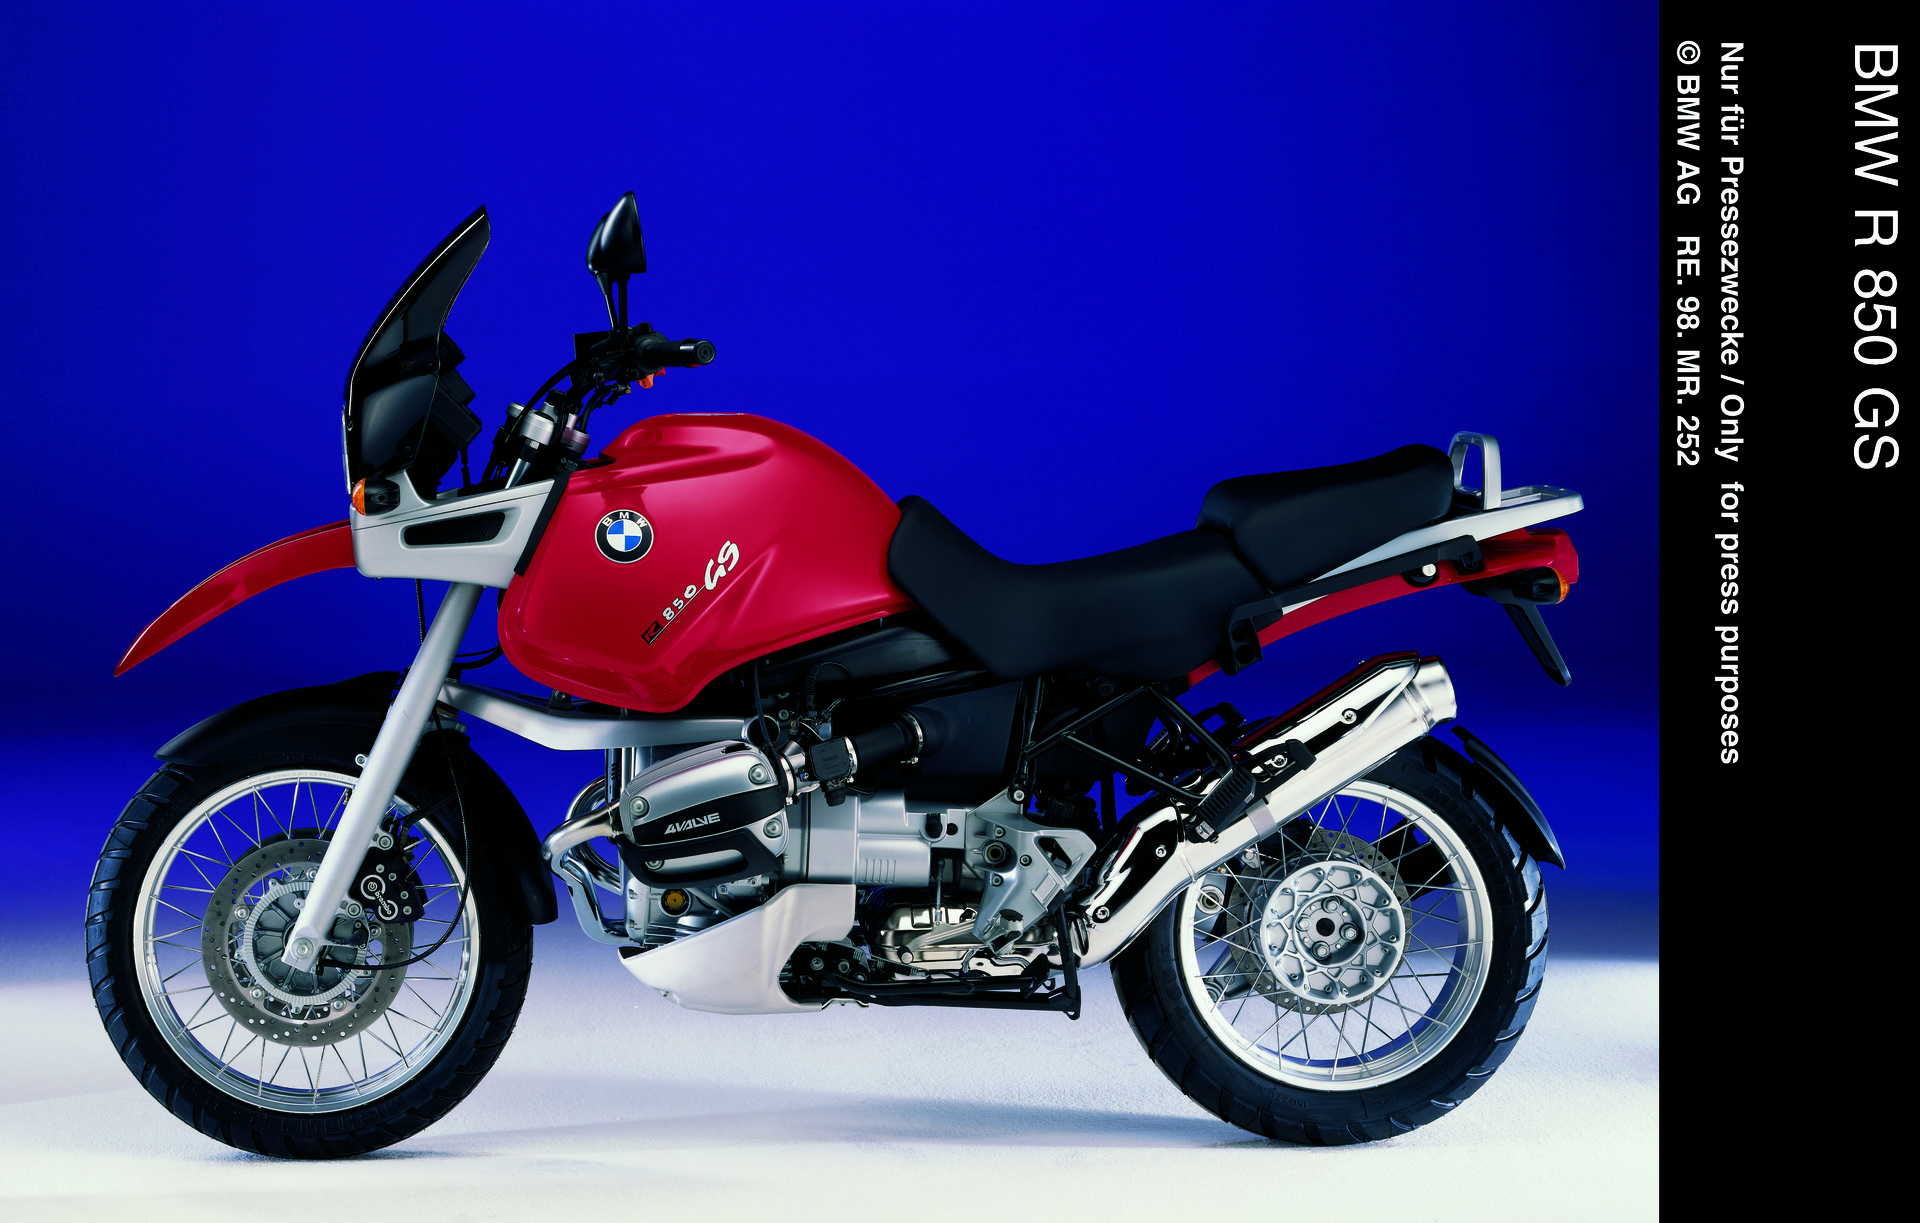 bmw r 850 gs baujahr 1998 datenblatt technische details. Black Bedroom Furniture Sets. Home Design Ideas